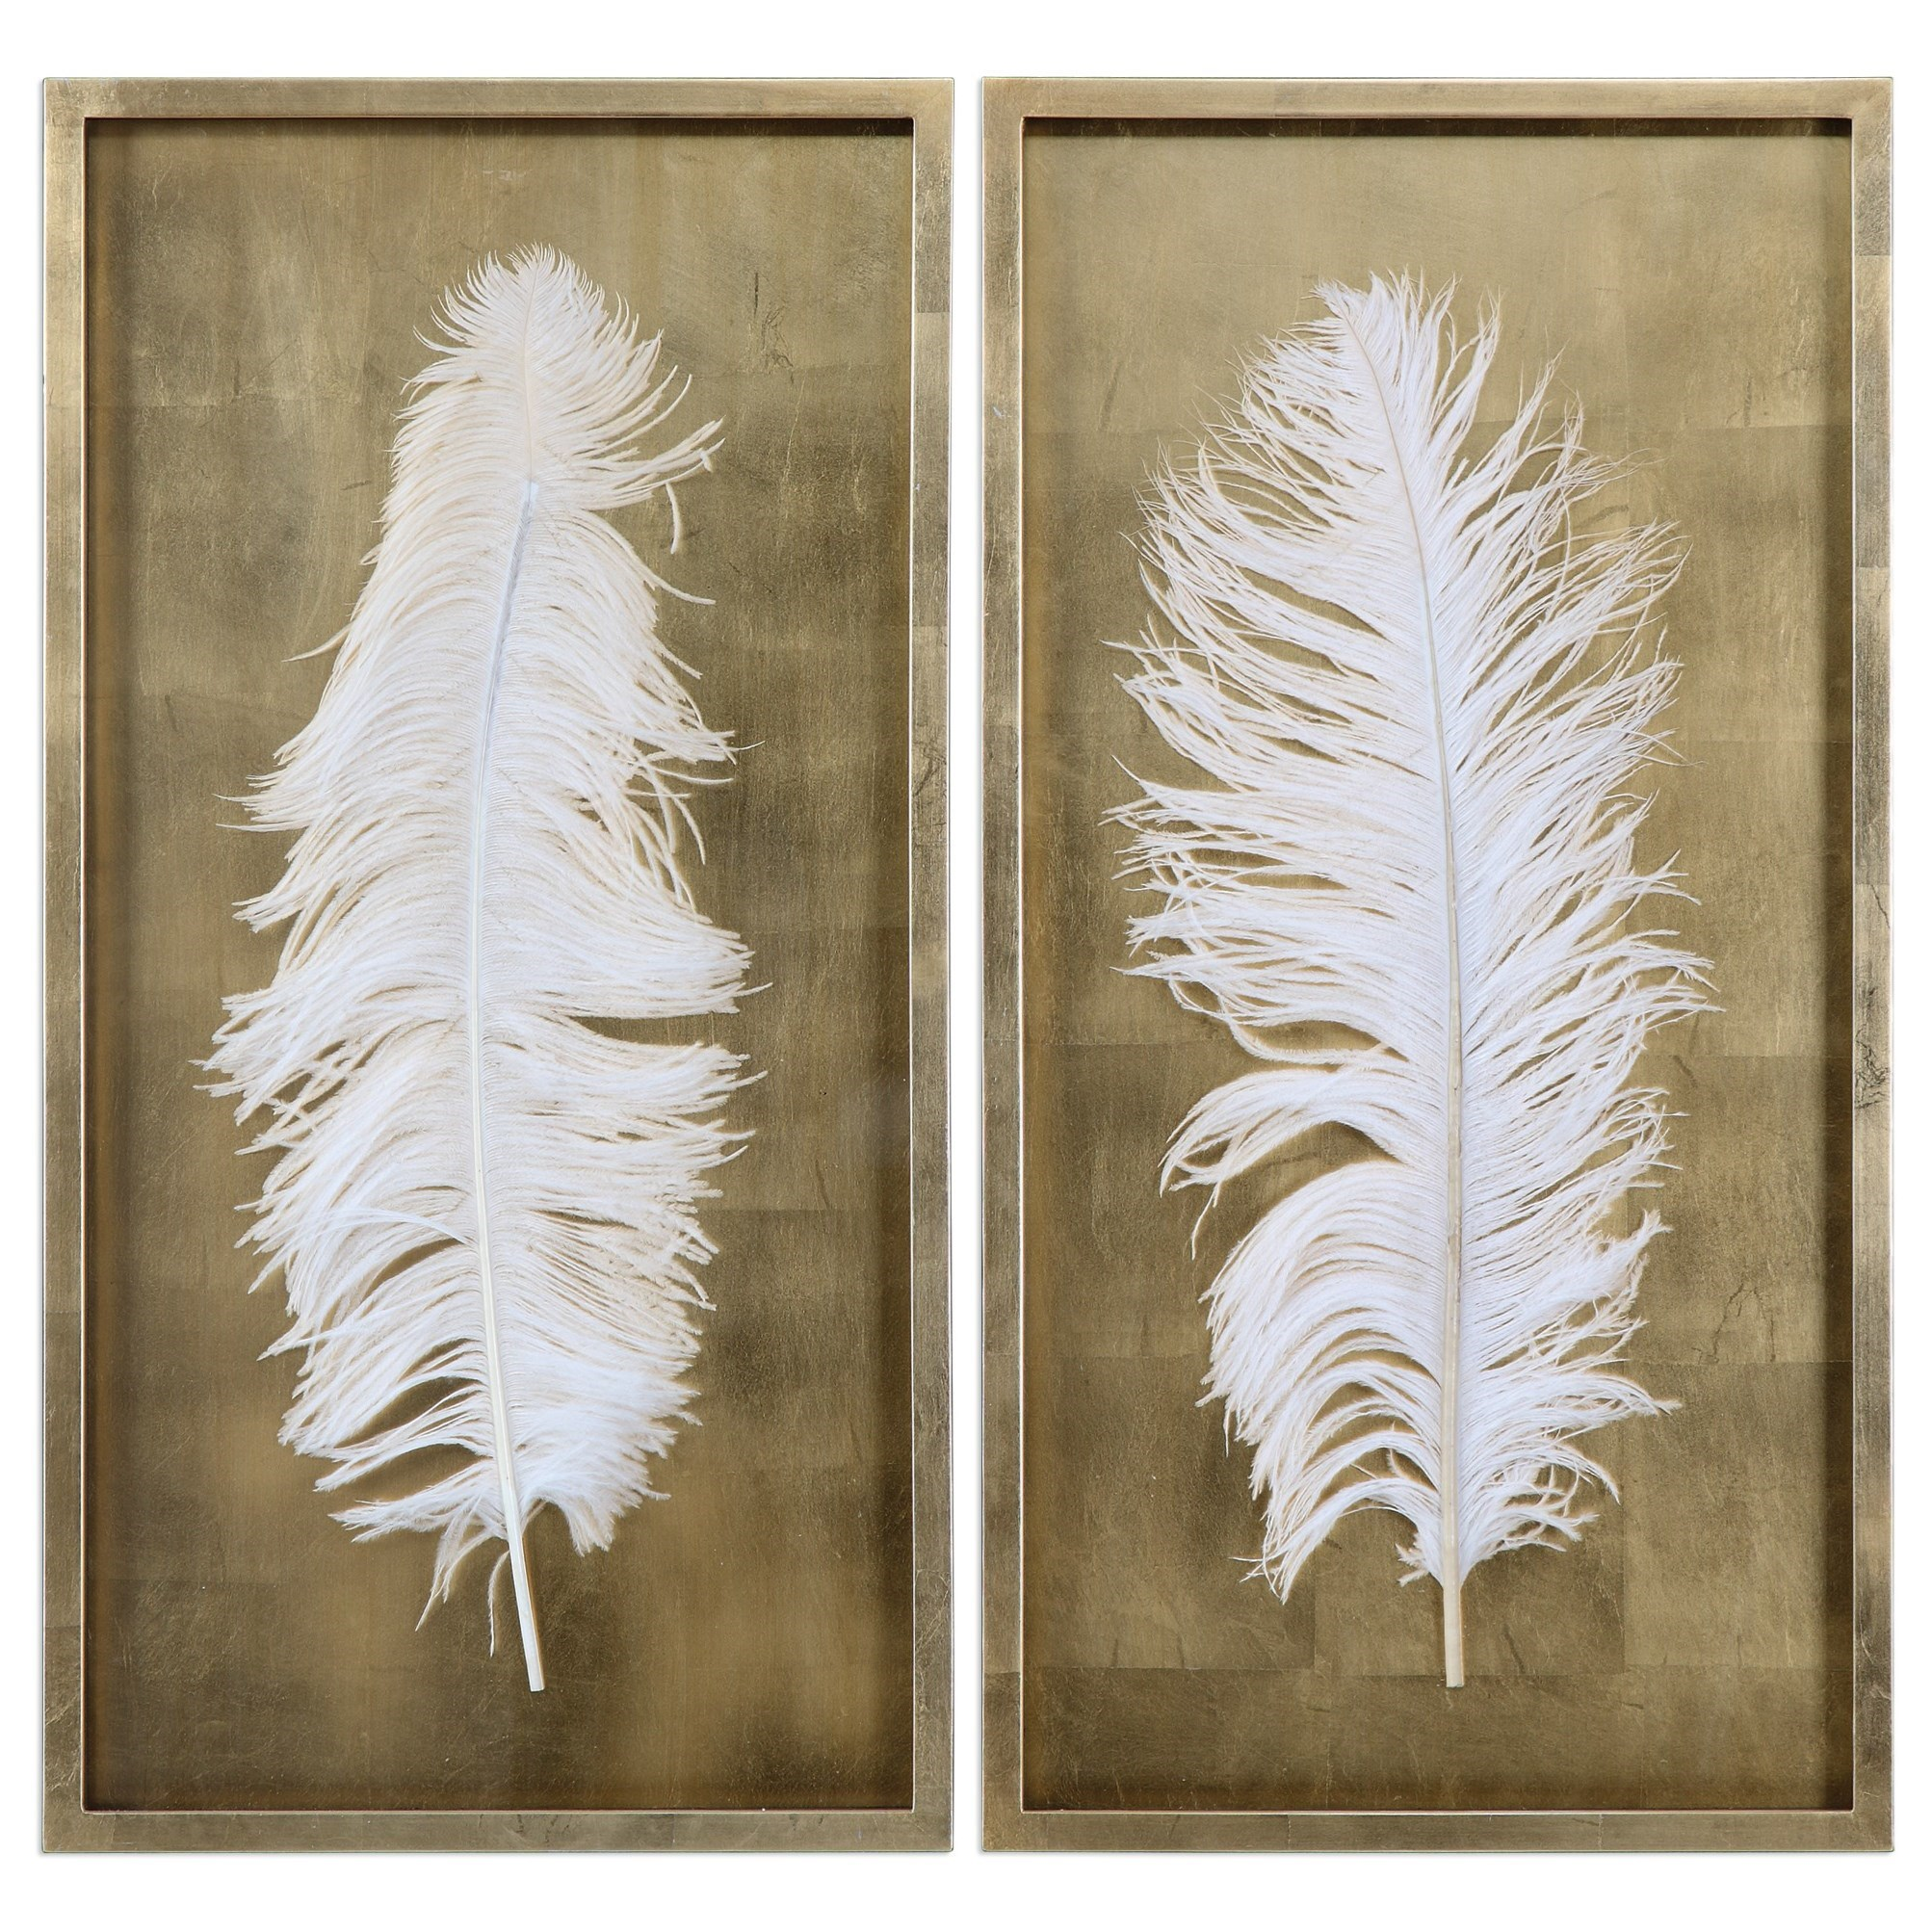 Uttermost Alternative Wall Decor White Feathers (Set of 2) - Item Number: 04057